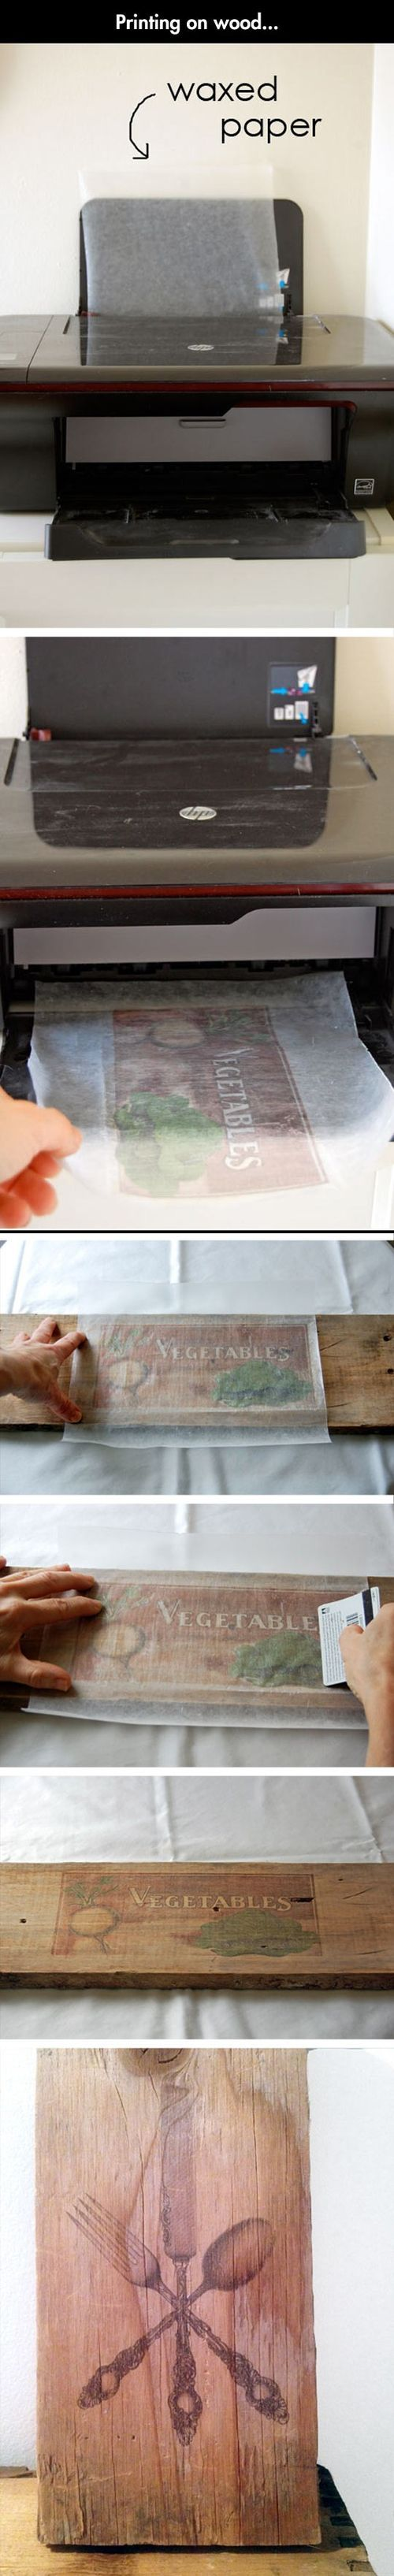 12 Easy Image Transfer Methods for DIY Projects! More